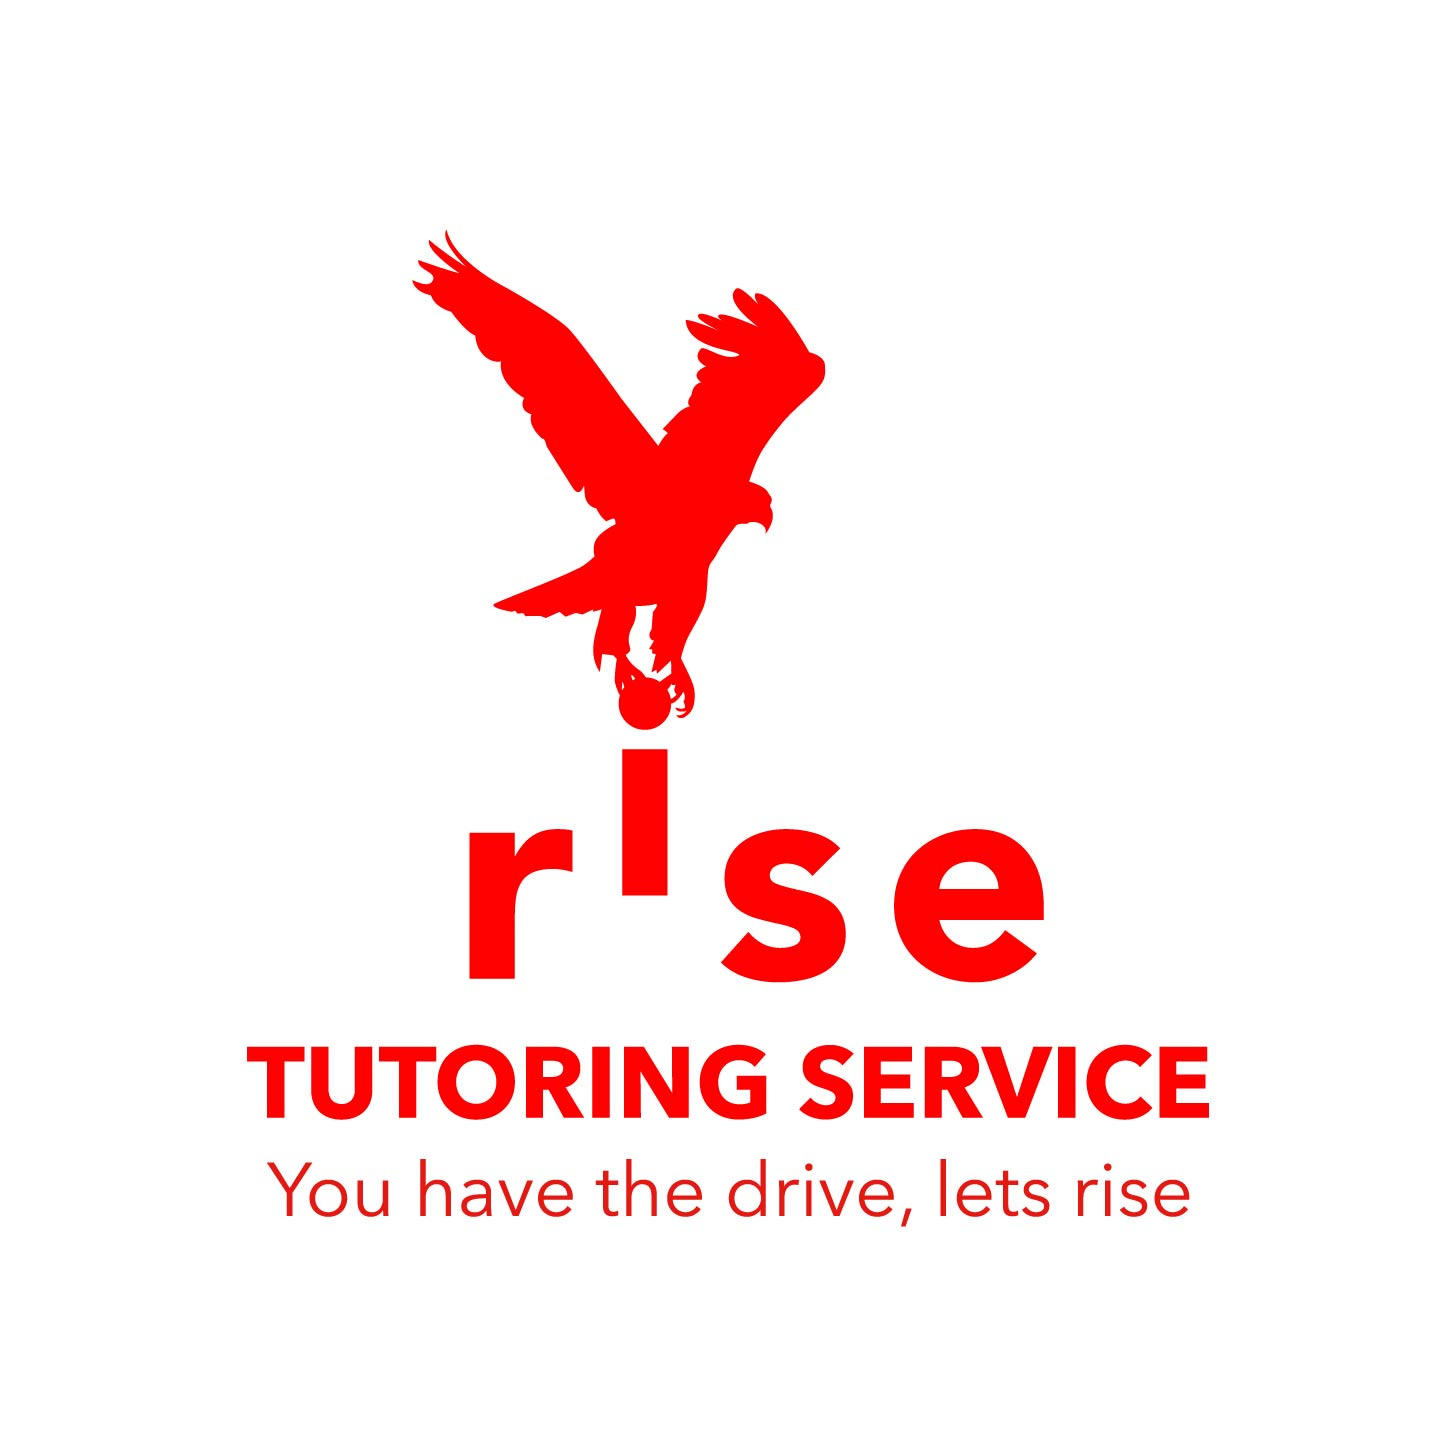 Logo Design by Cross Desain - Entry No. 193 in the Logo Design Contest Imaginative Logo Design for Rise Tutoring Service.